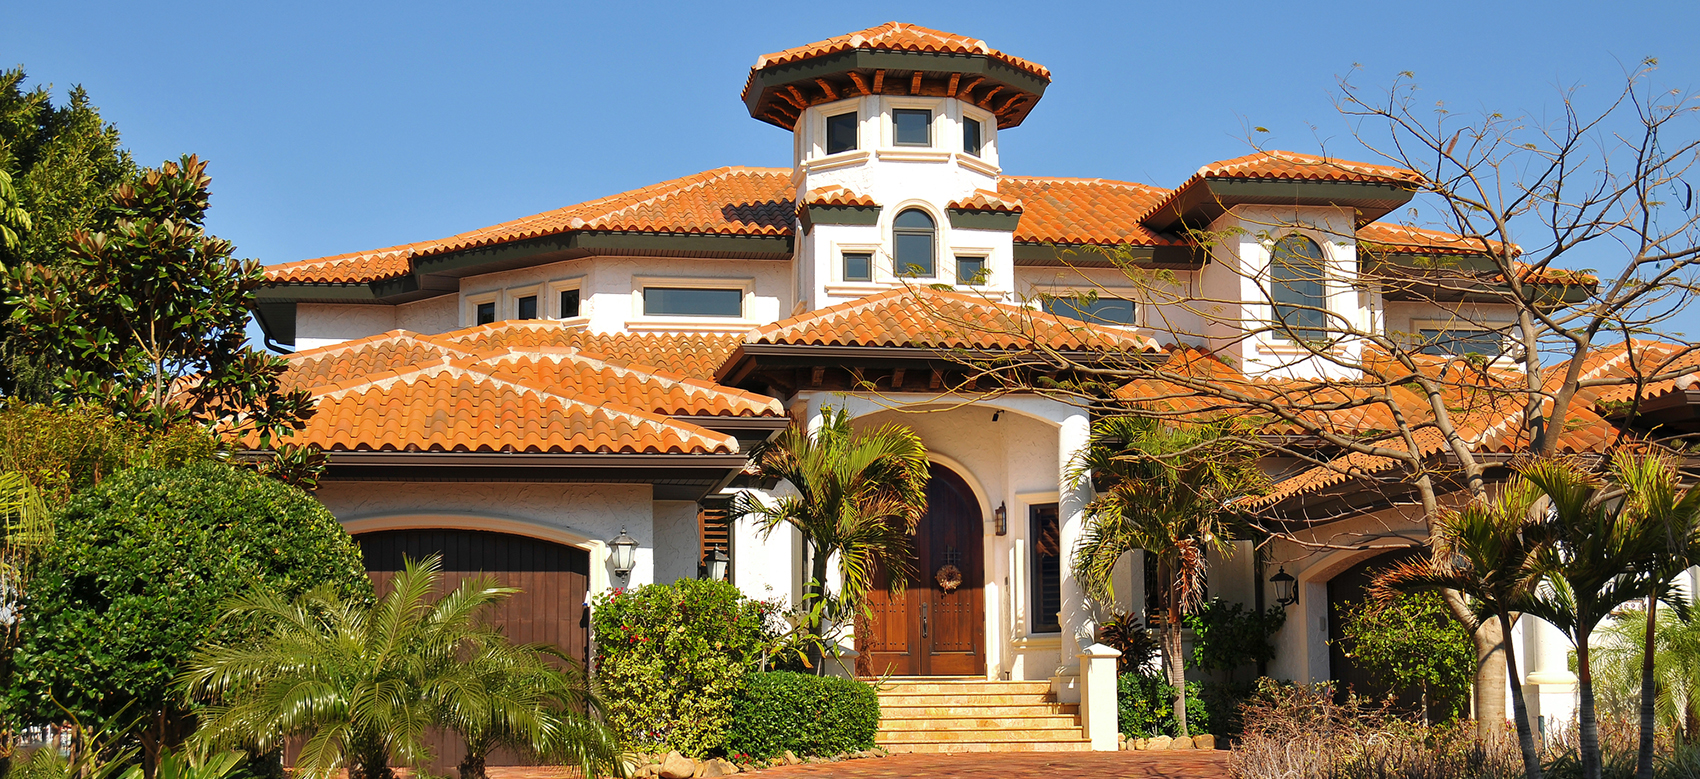 Luxury spanish style home with tiles roofs in Florida